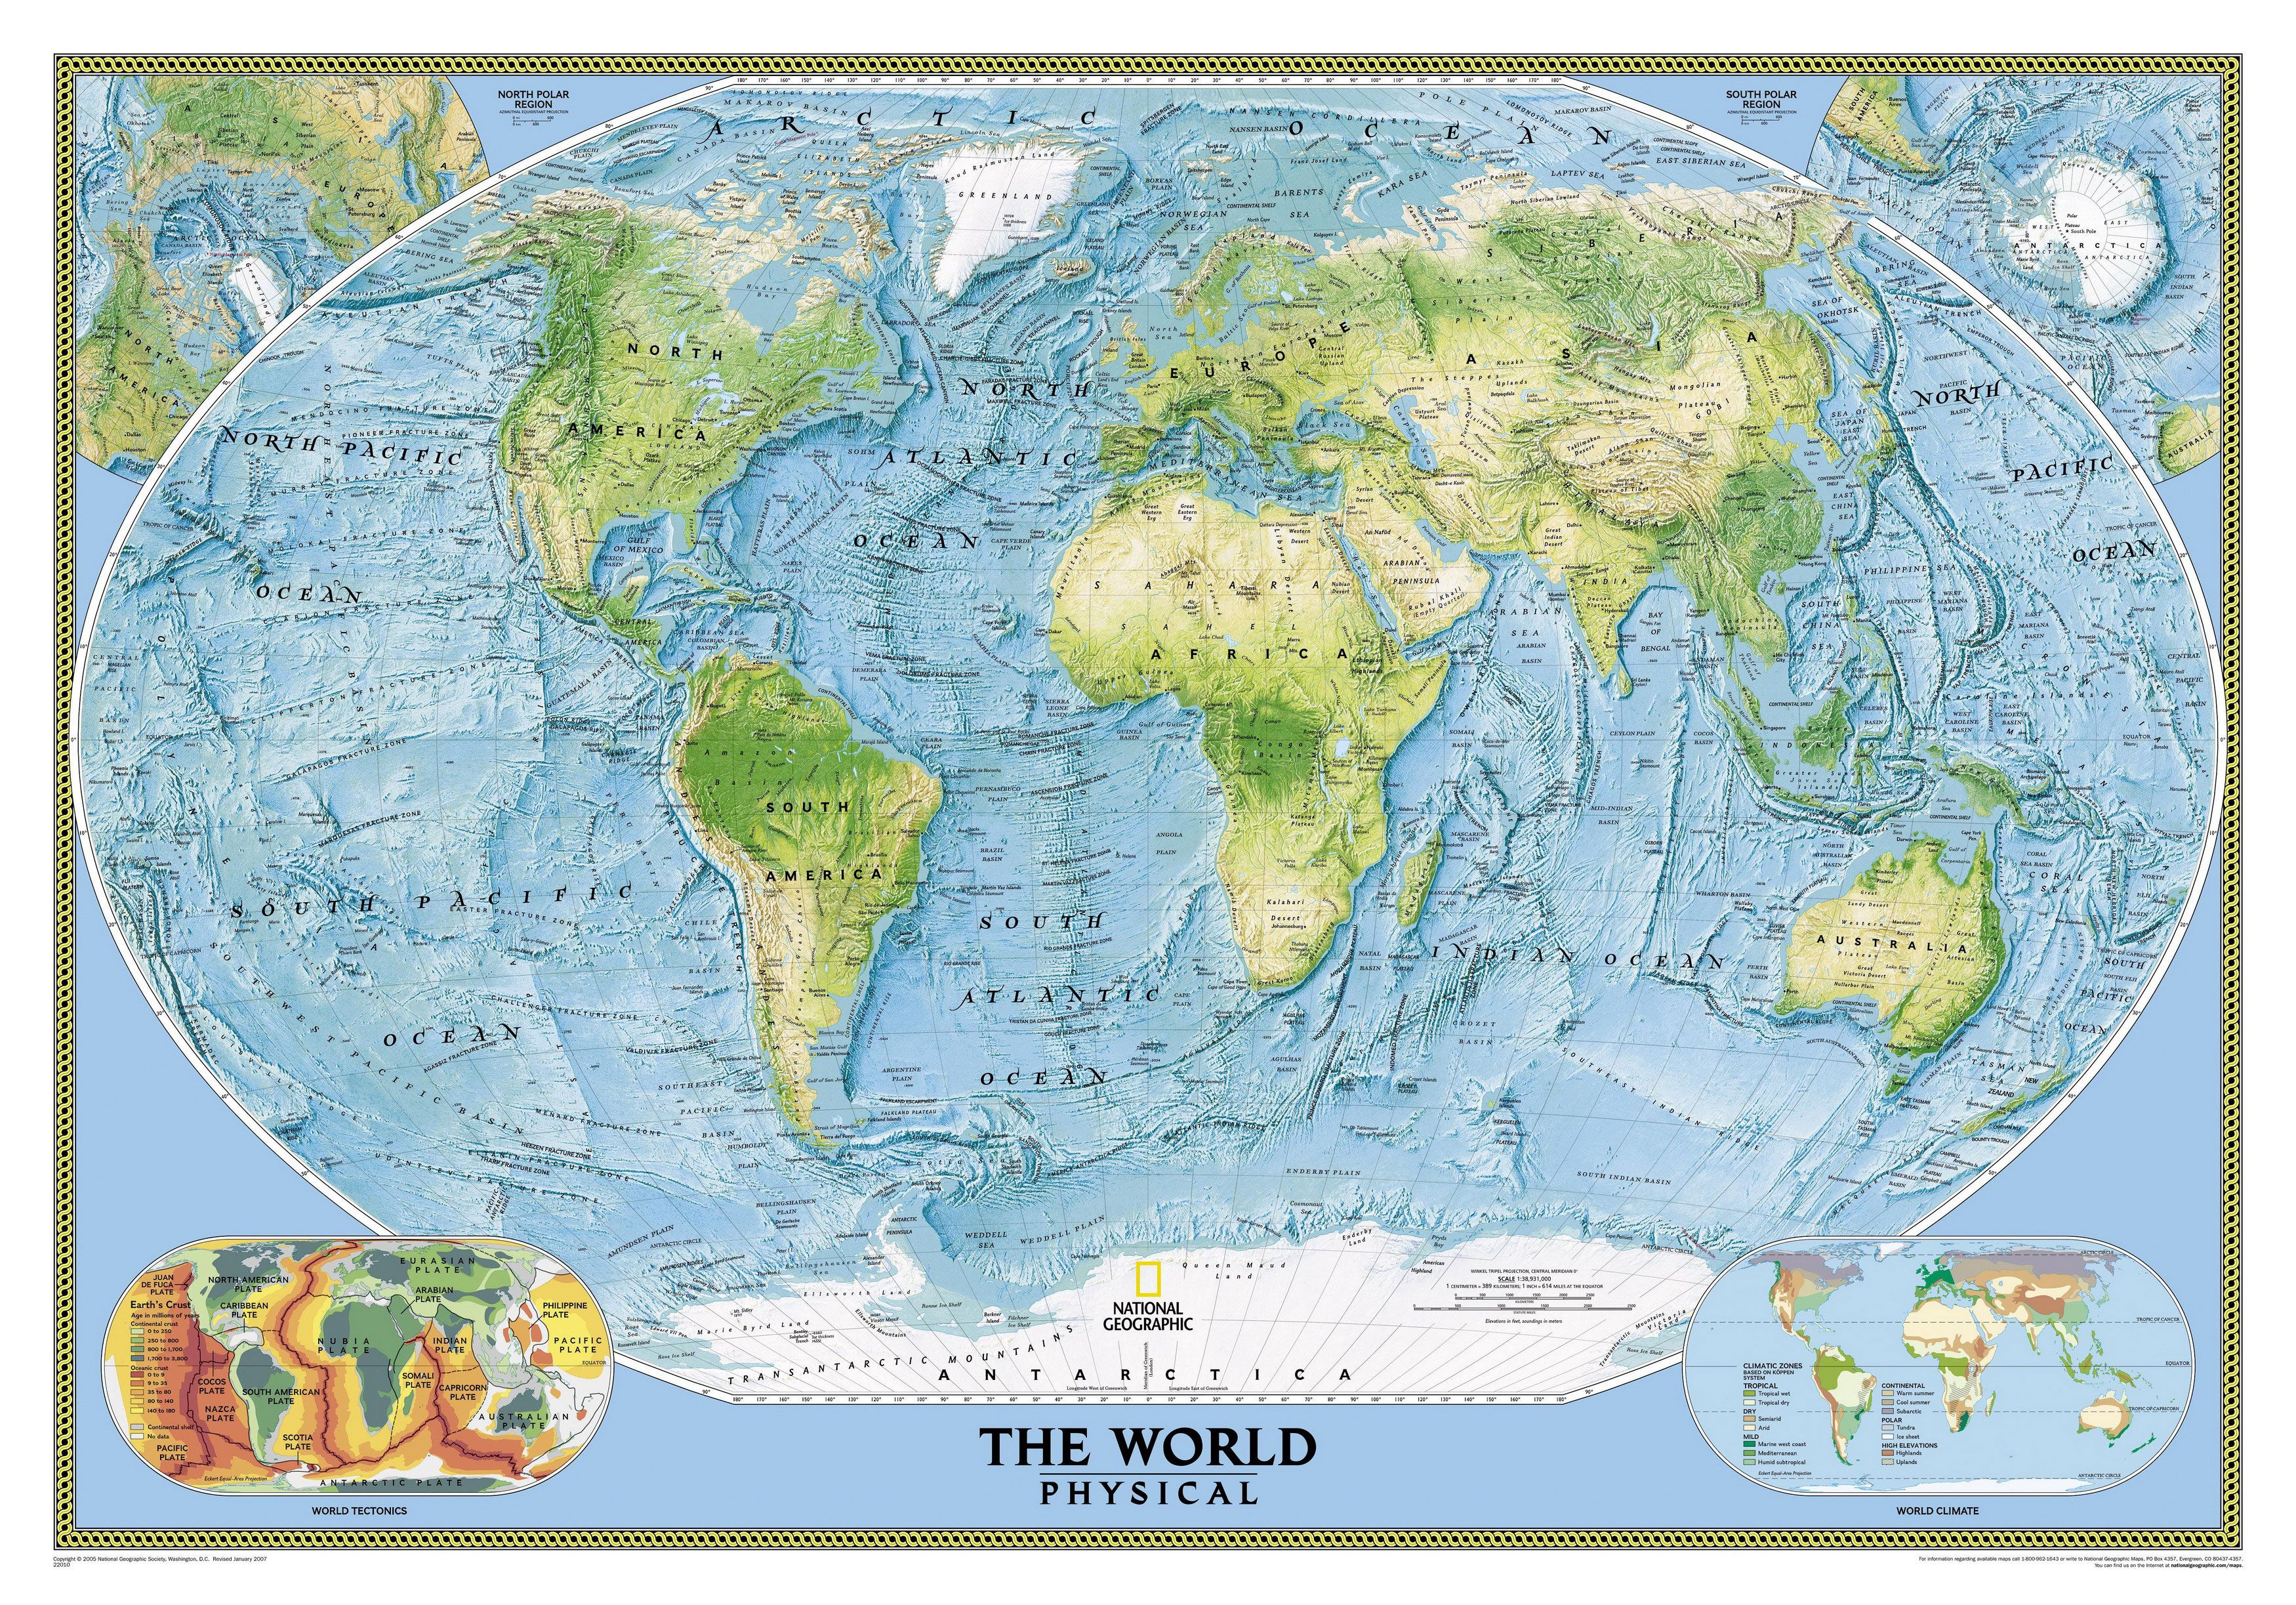 Physical map of the sea floor phisical map of the earth 221b world nat physical lamin this huge wall map highlights the earths land and undersea forms with exquisite hand painted relief sciox Gallery